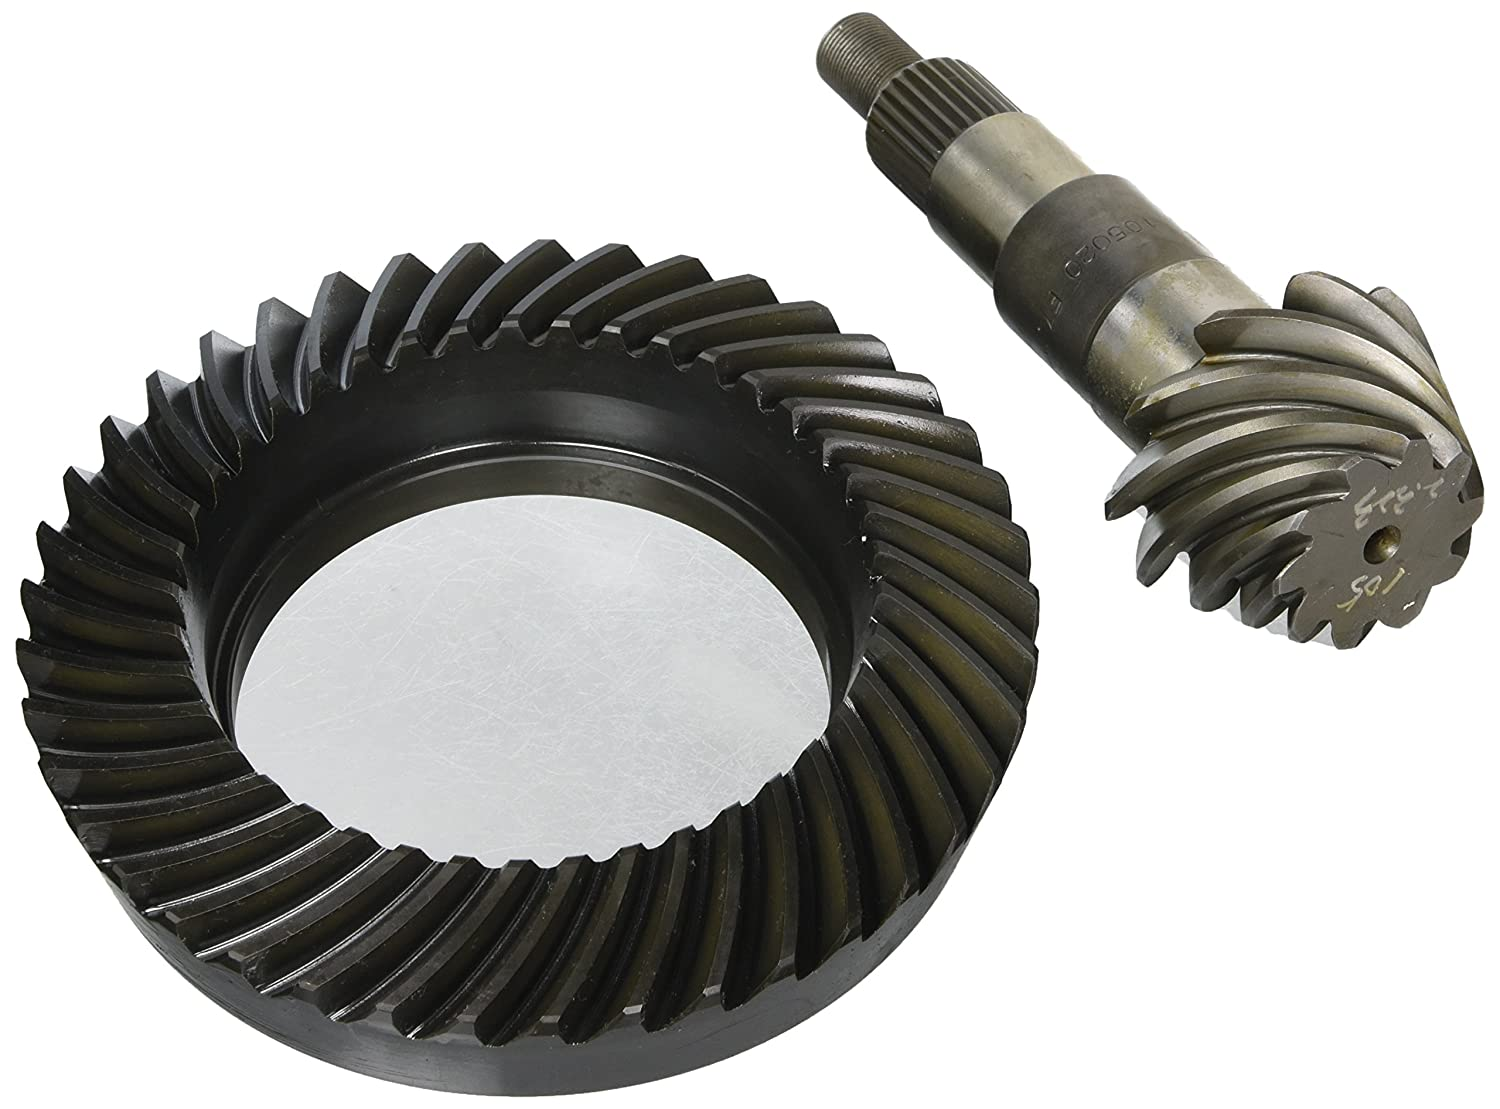 Motive Gear F875456 7.5' Rear Ring and Pinion for Ford (4.56 Ratio)